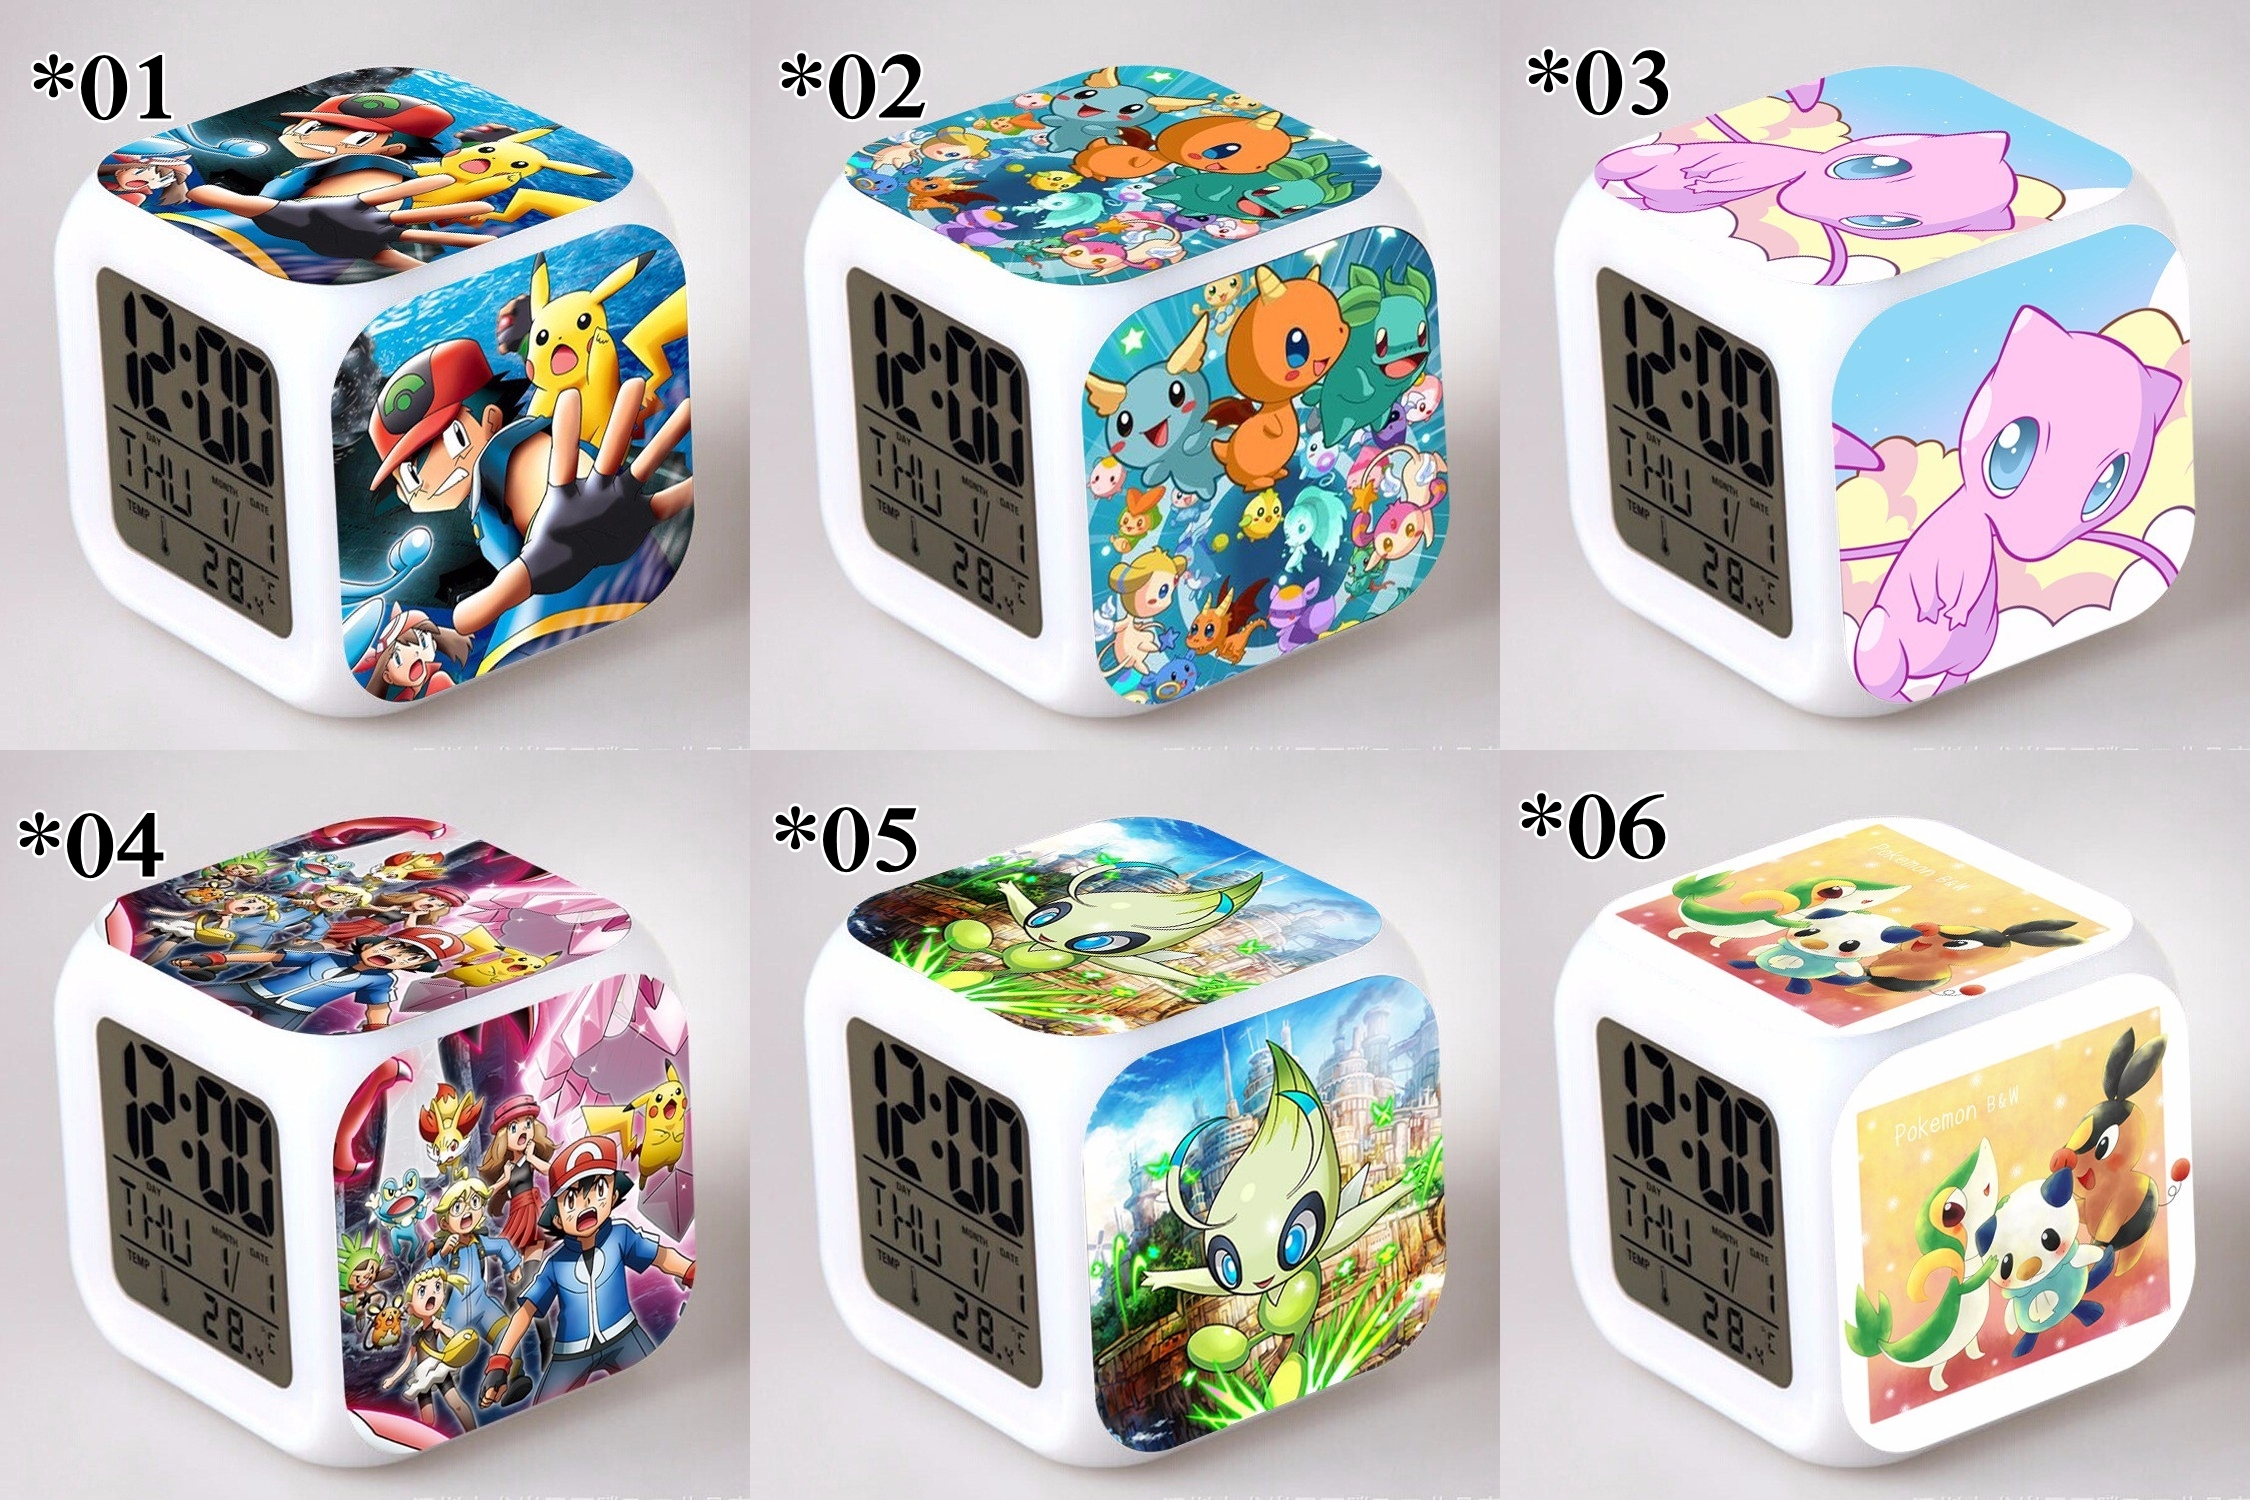 Relojes digitales Pokemon *02